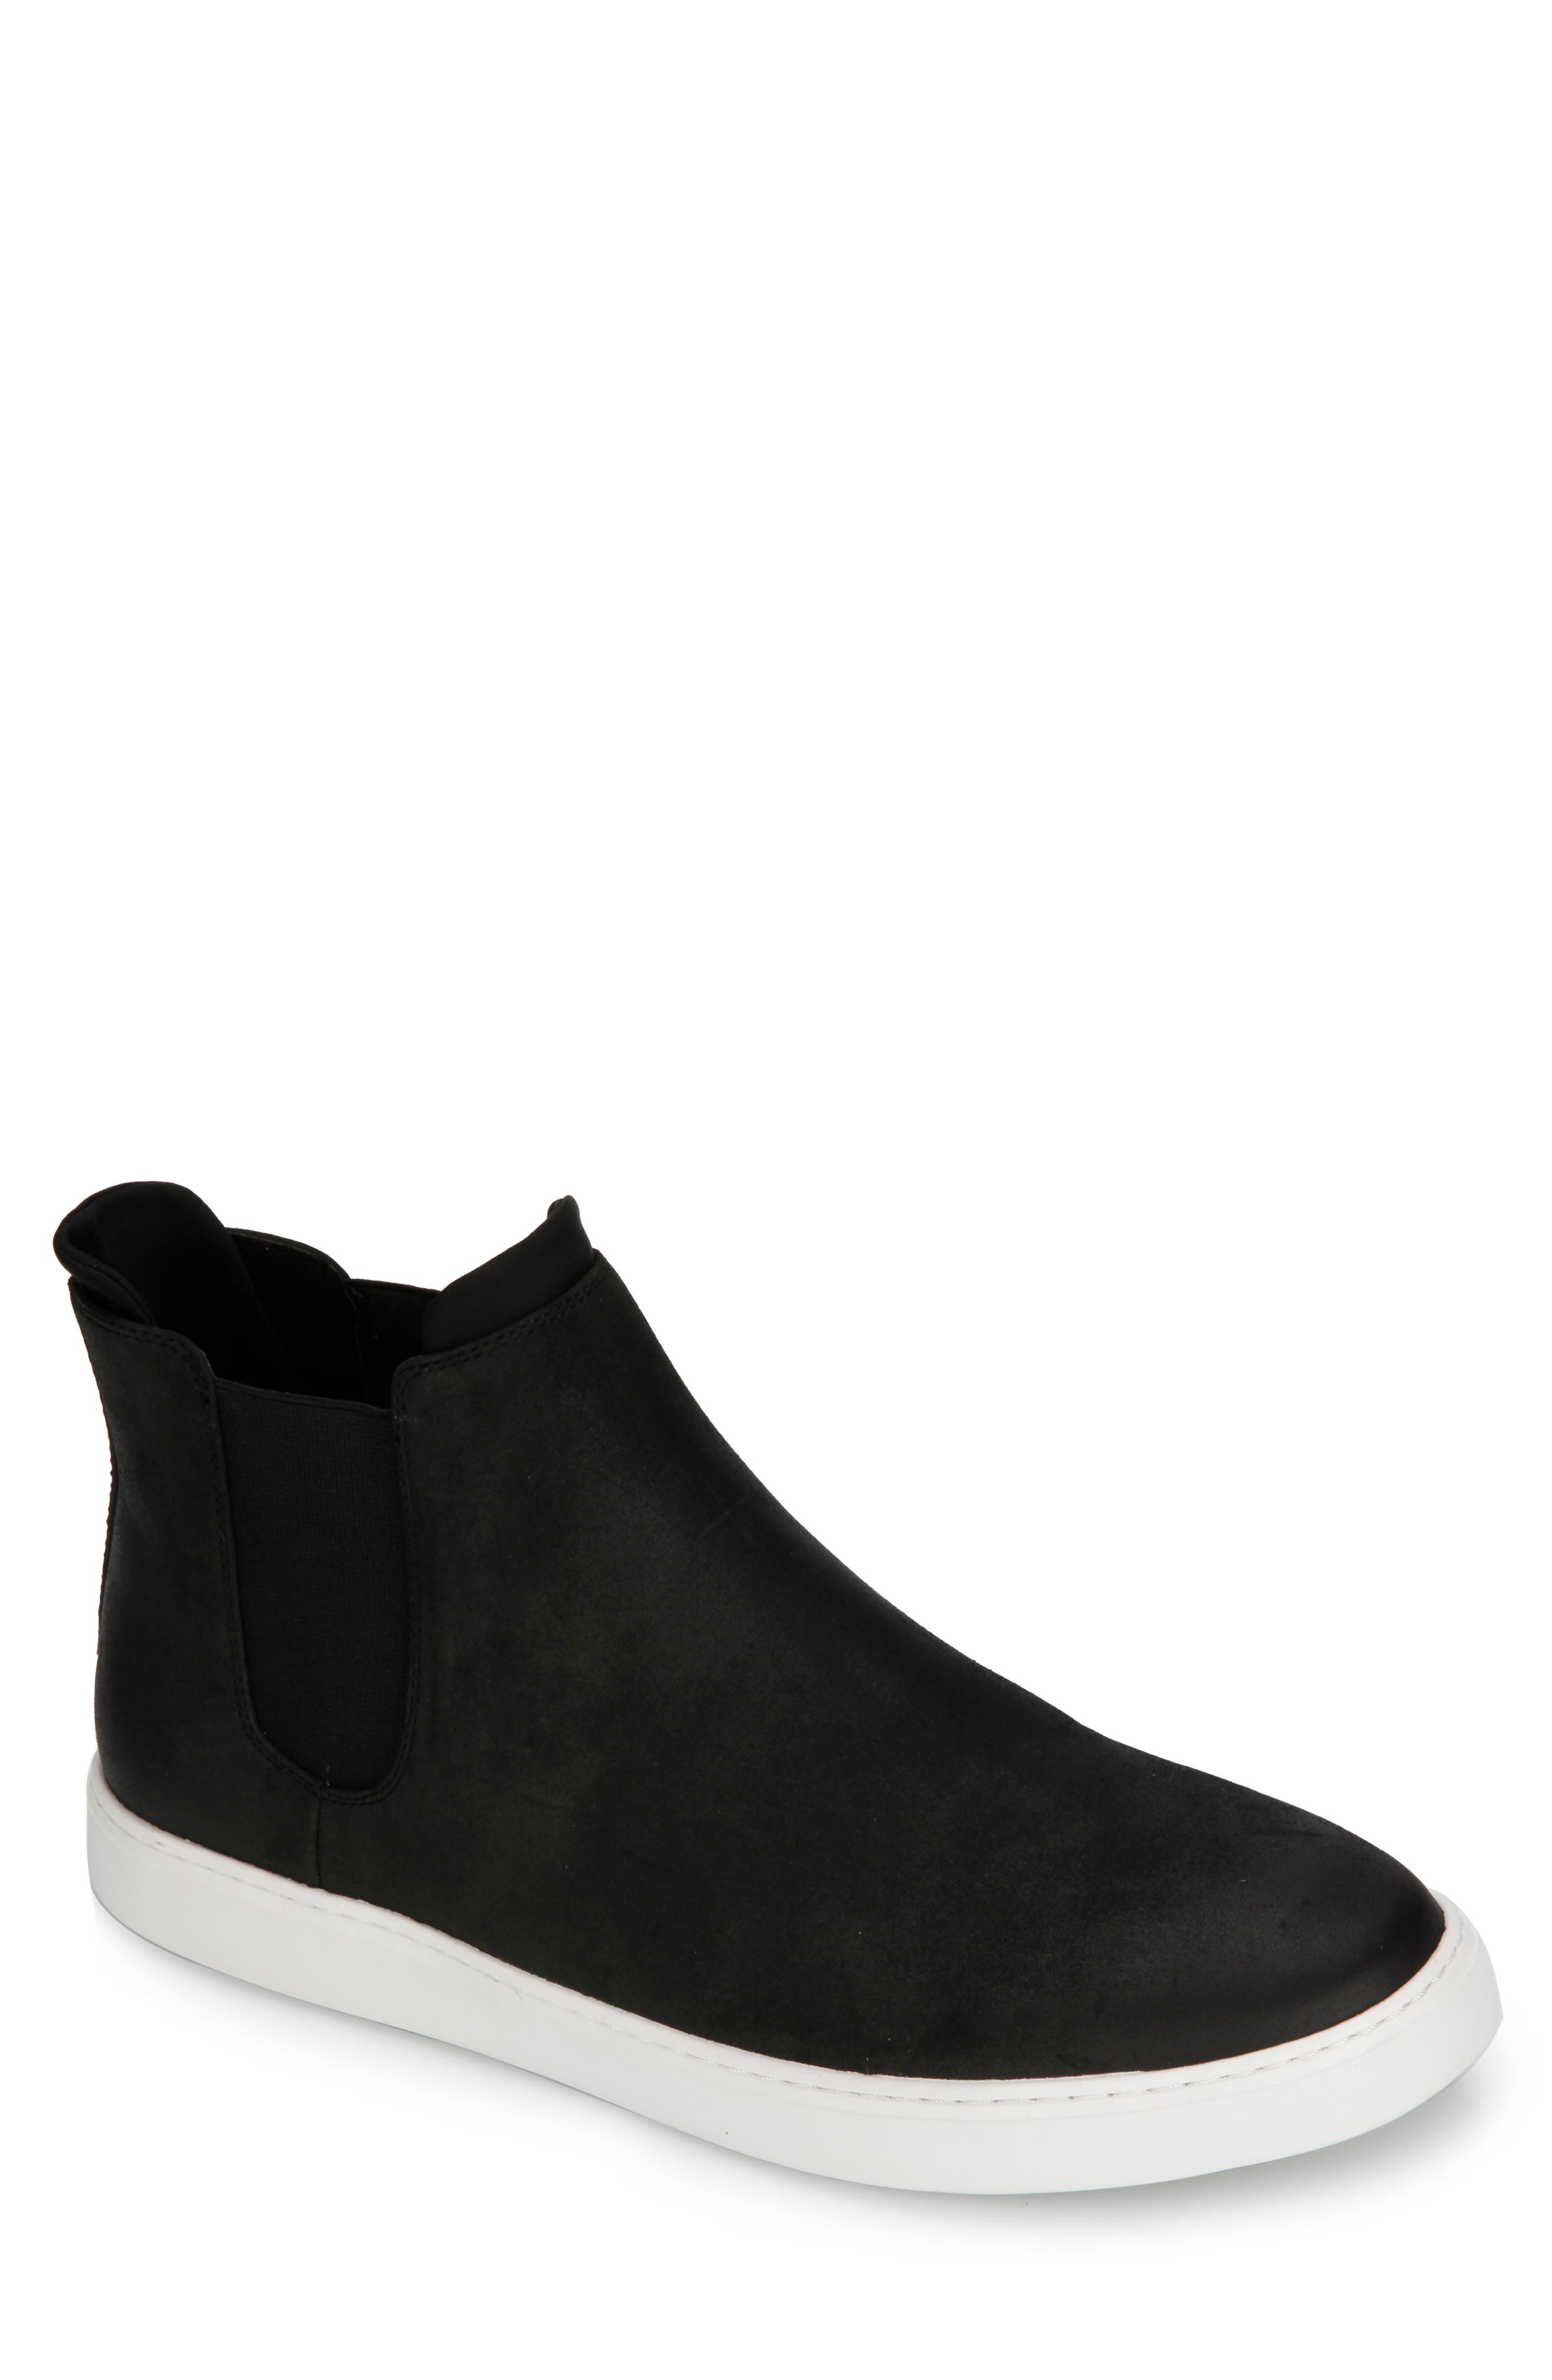 Reaction Kenneth Cole Indy High Top Sneaker, Black